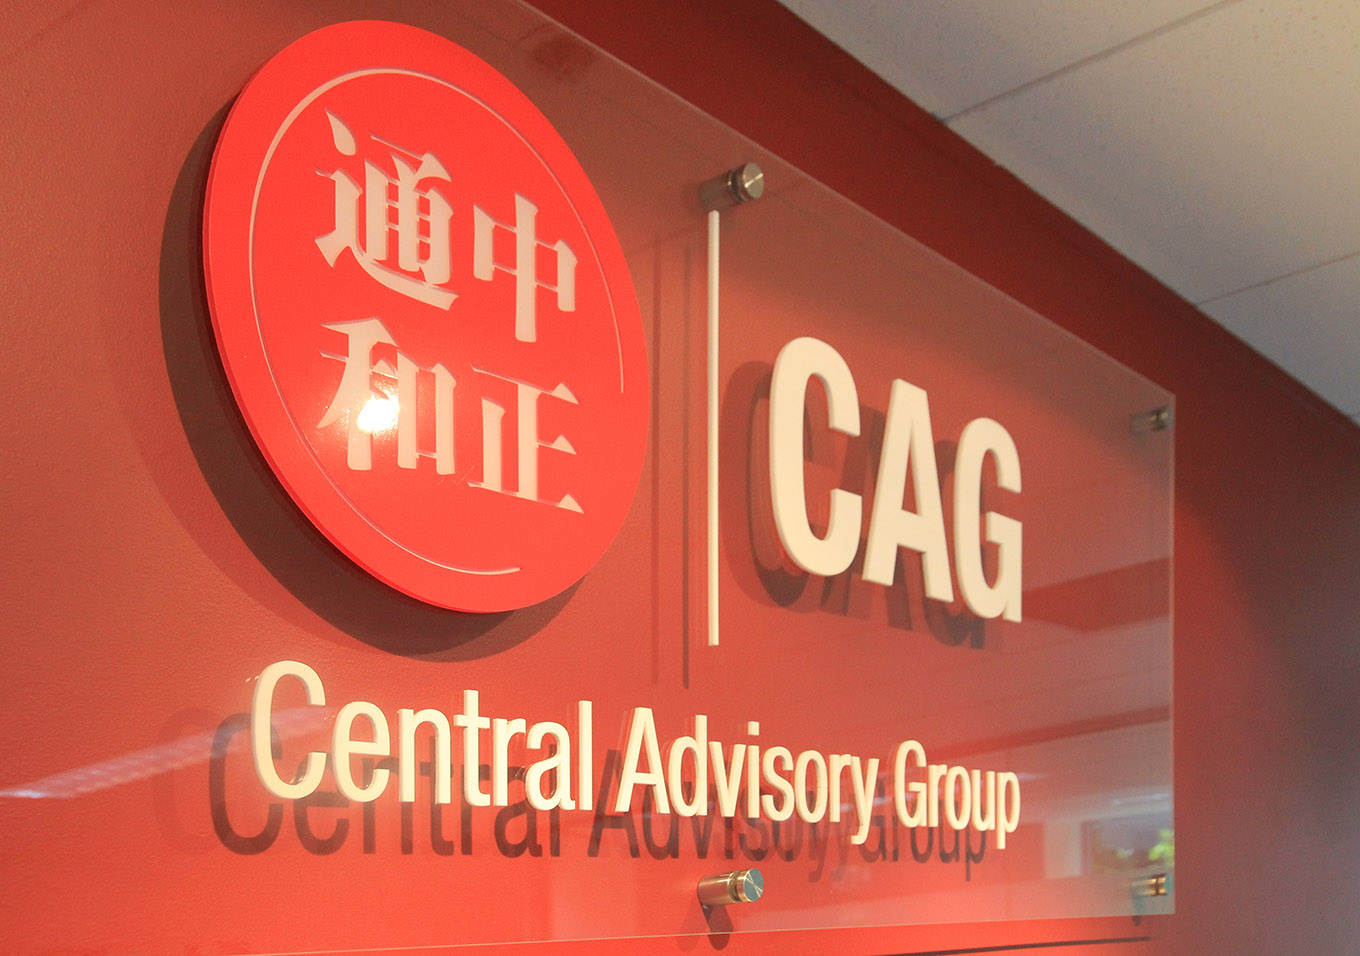 Central Advisory Group office 3D signage